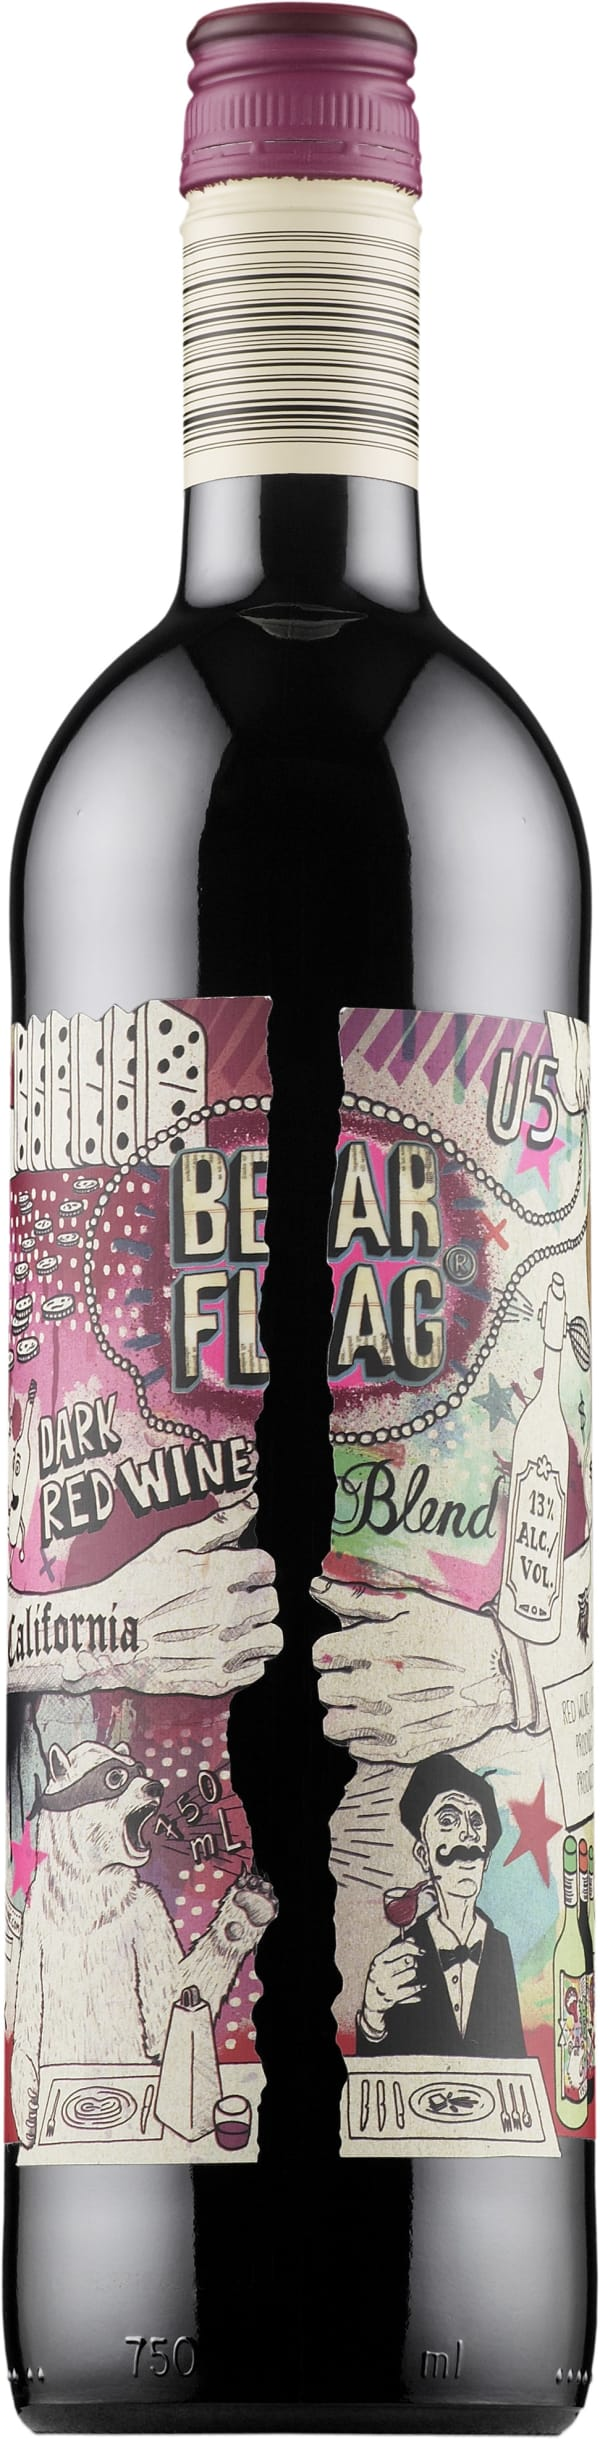 Bearflag Dark Red Wine Blend